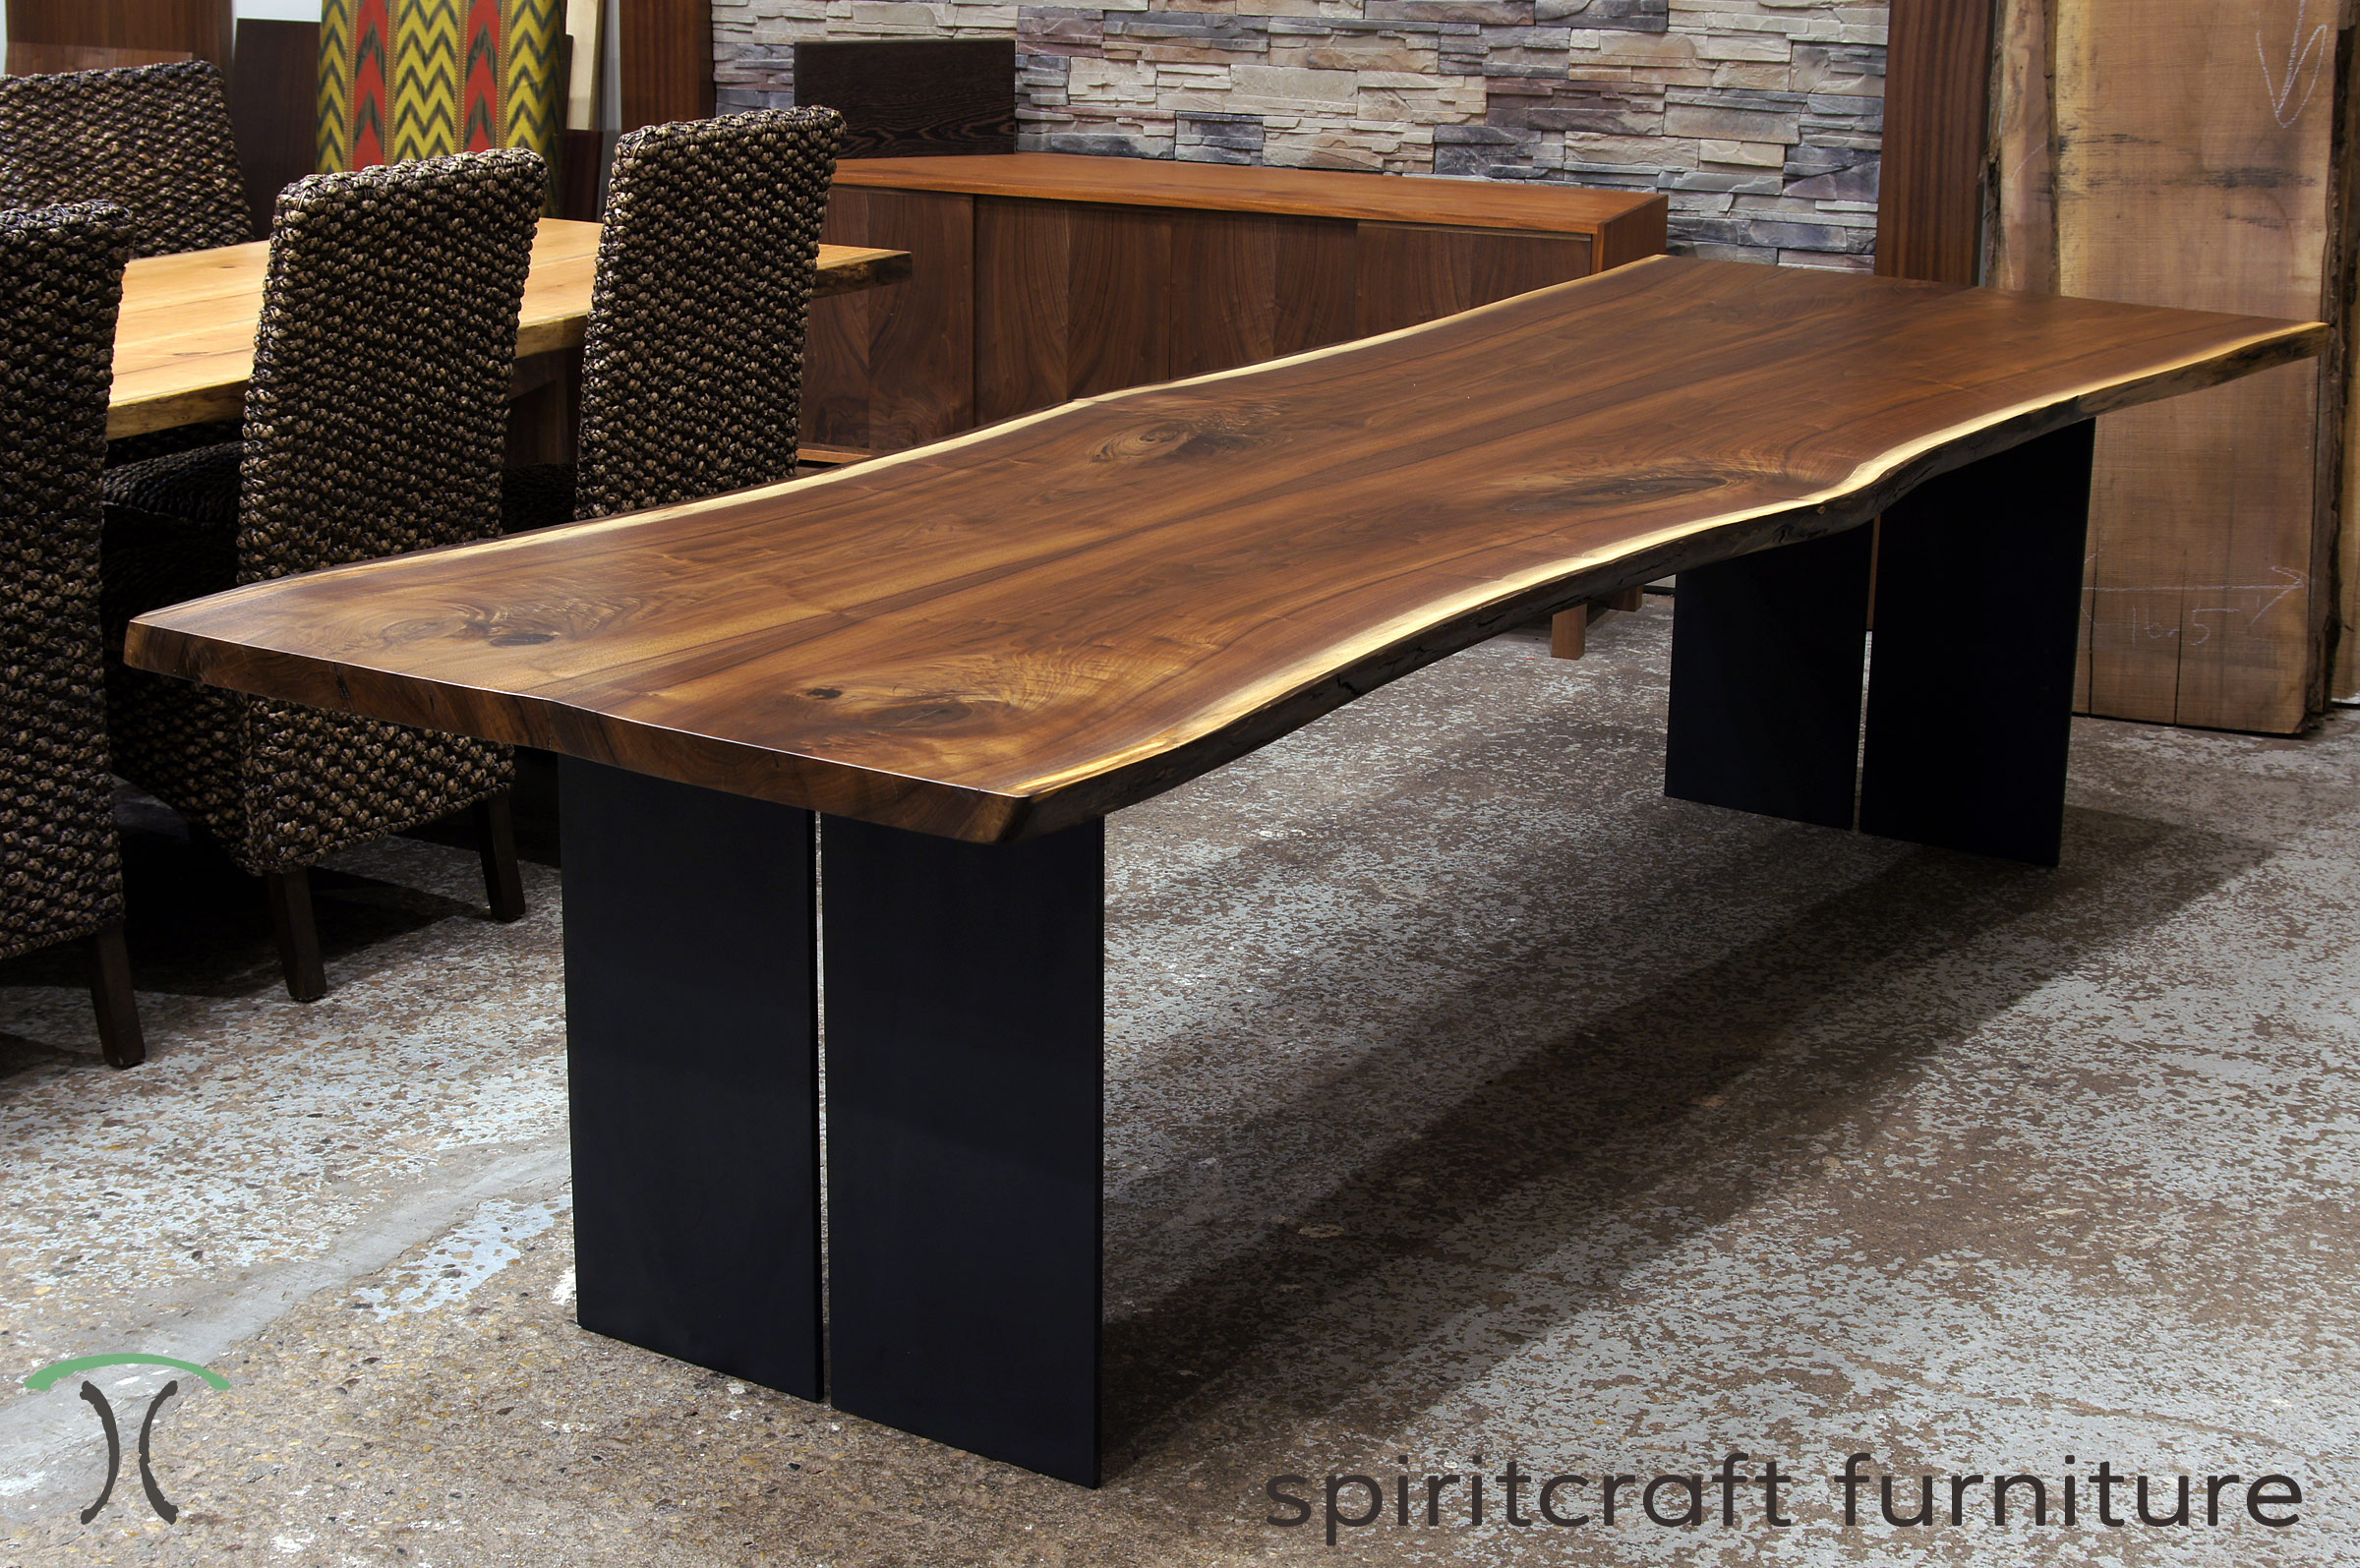 Live Edge Chicago Area Walnut Dining Table With Steel Legs. Features  Book Matched Black